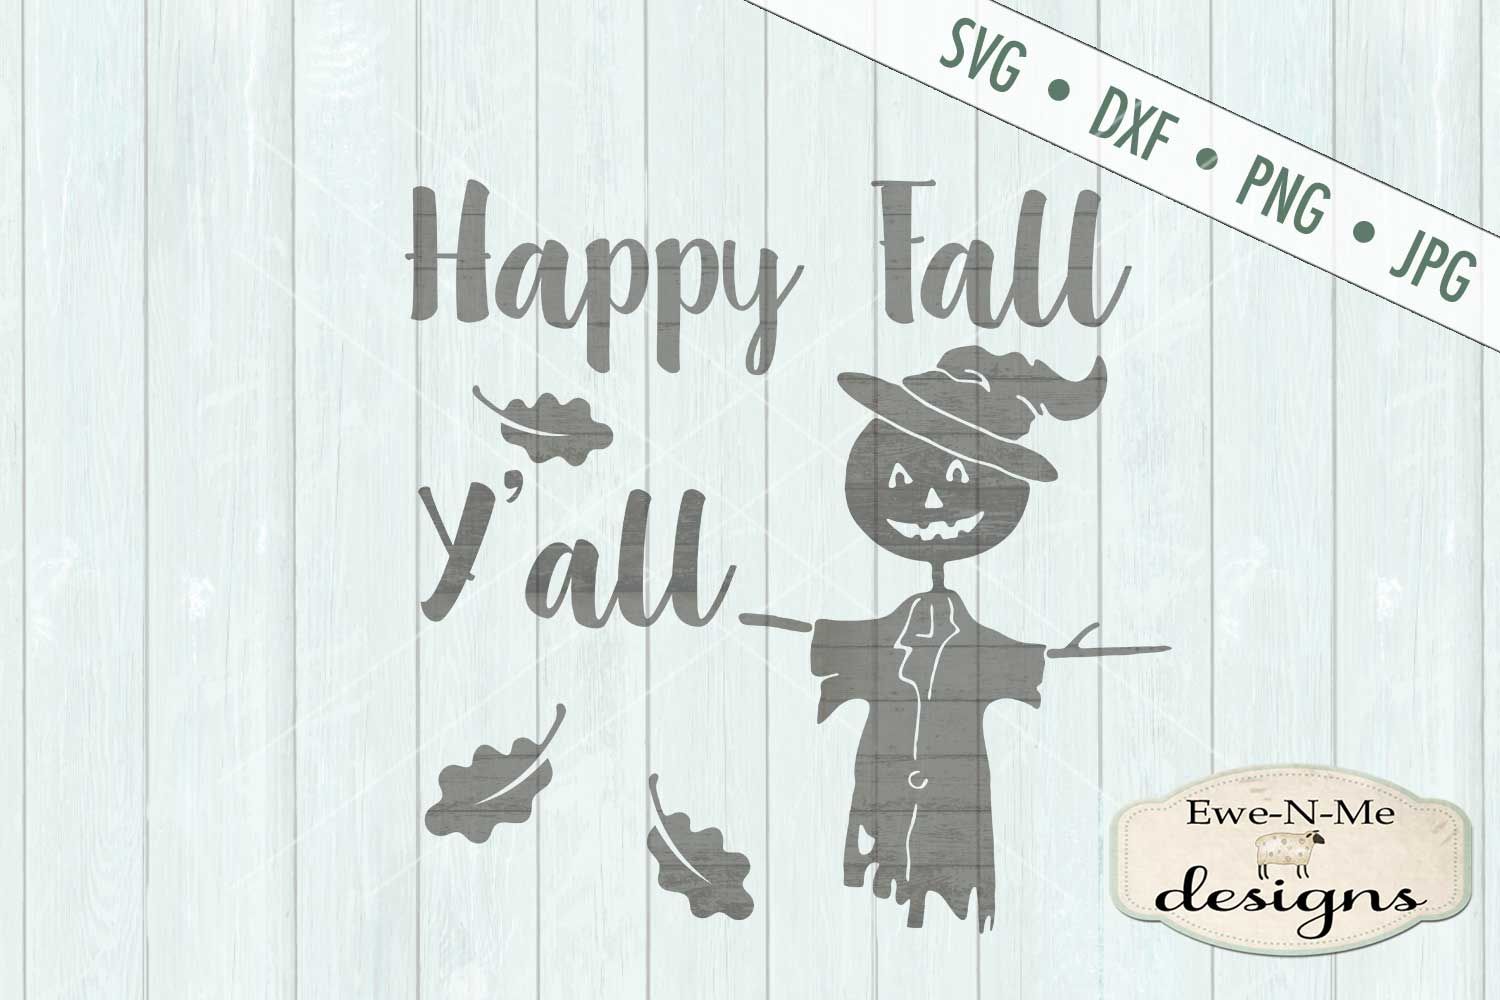 Happy Fall Y'all Scarecrow Leaves SVG DXF Files example image 2